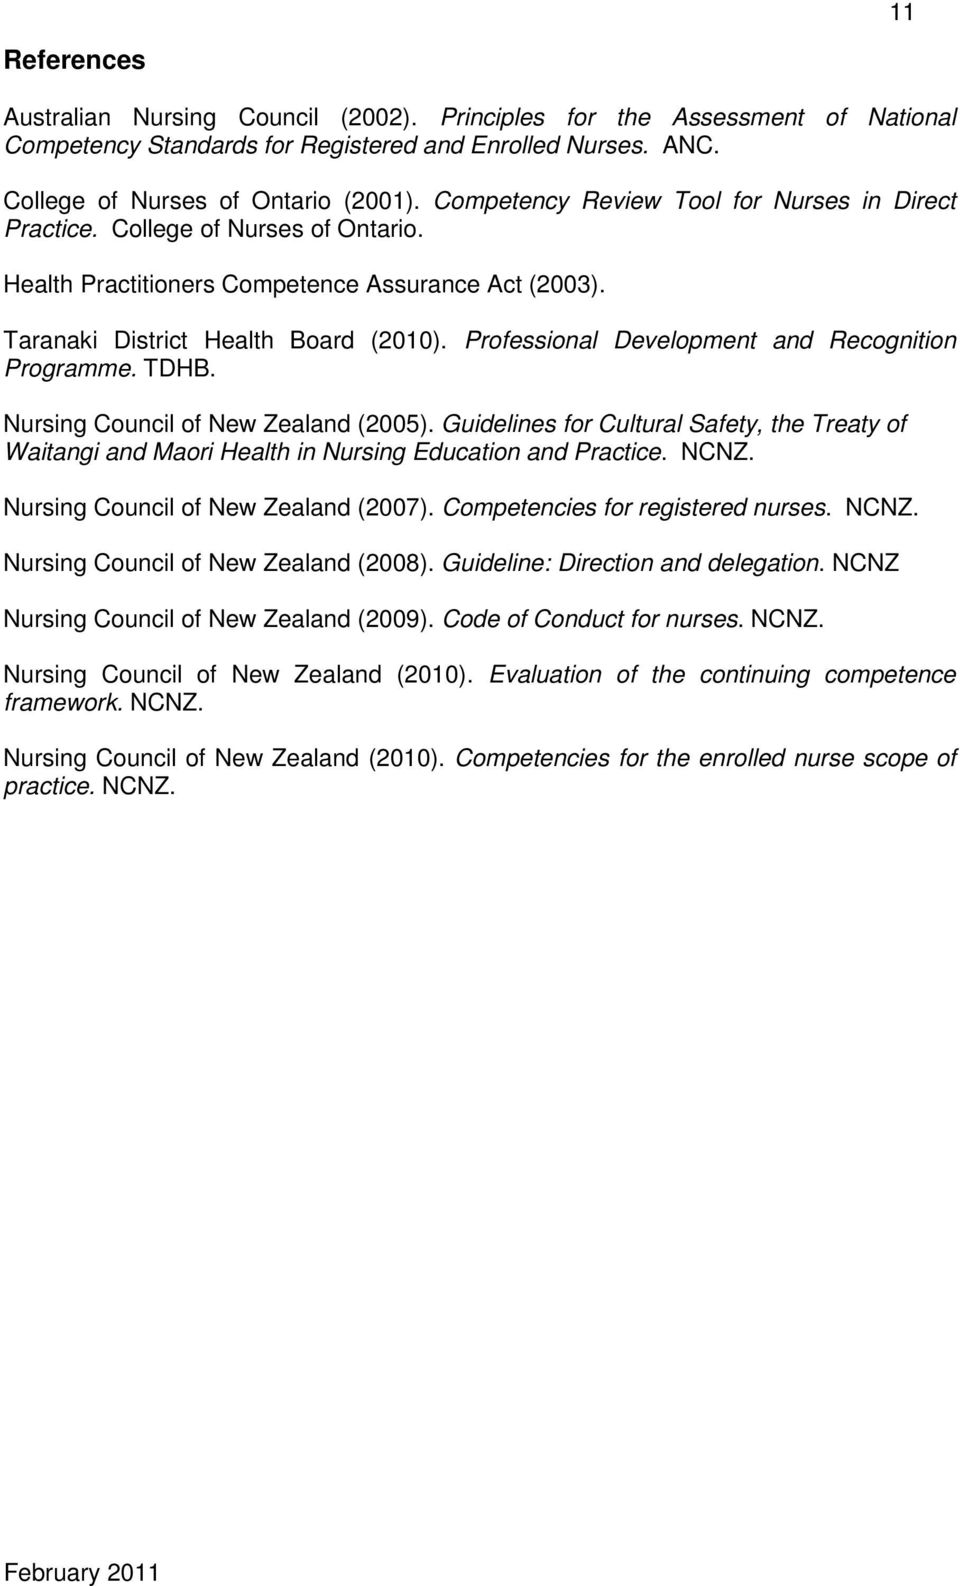 Professional Development and Recognition Programme. TDHB. Nursing Council of New Zealand (2005).